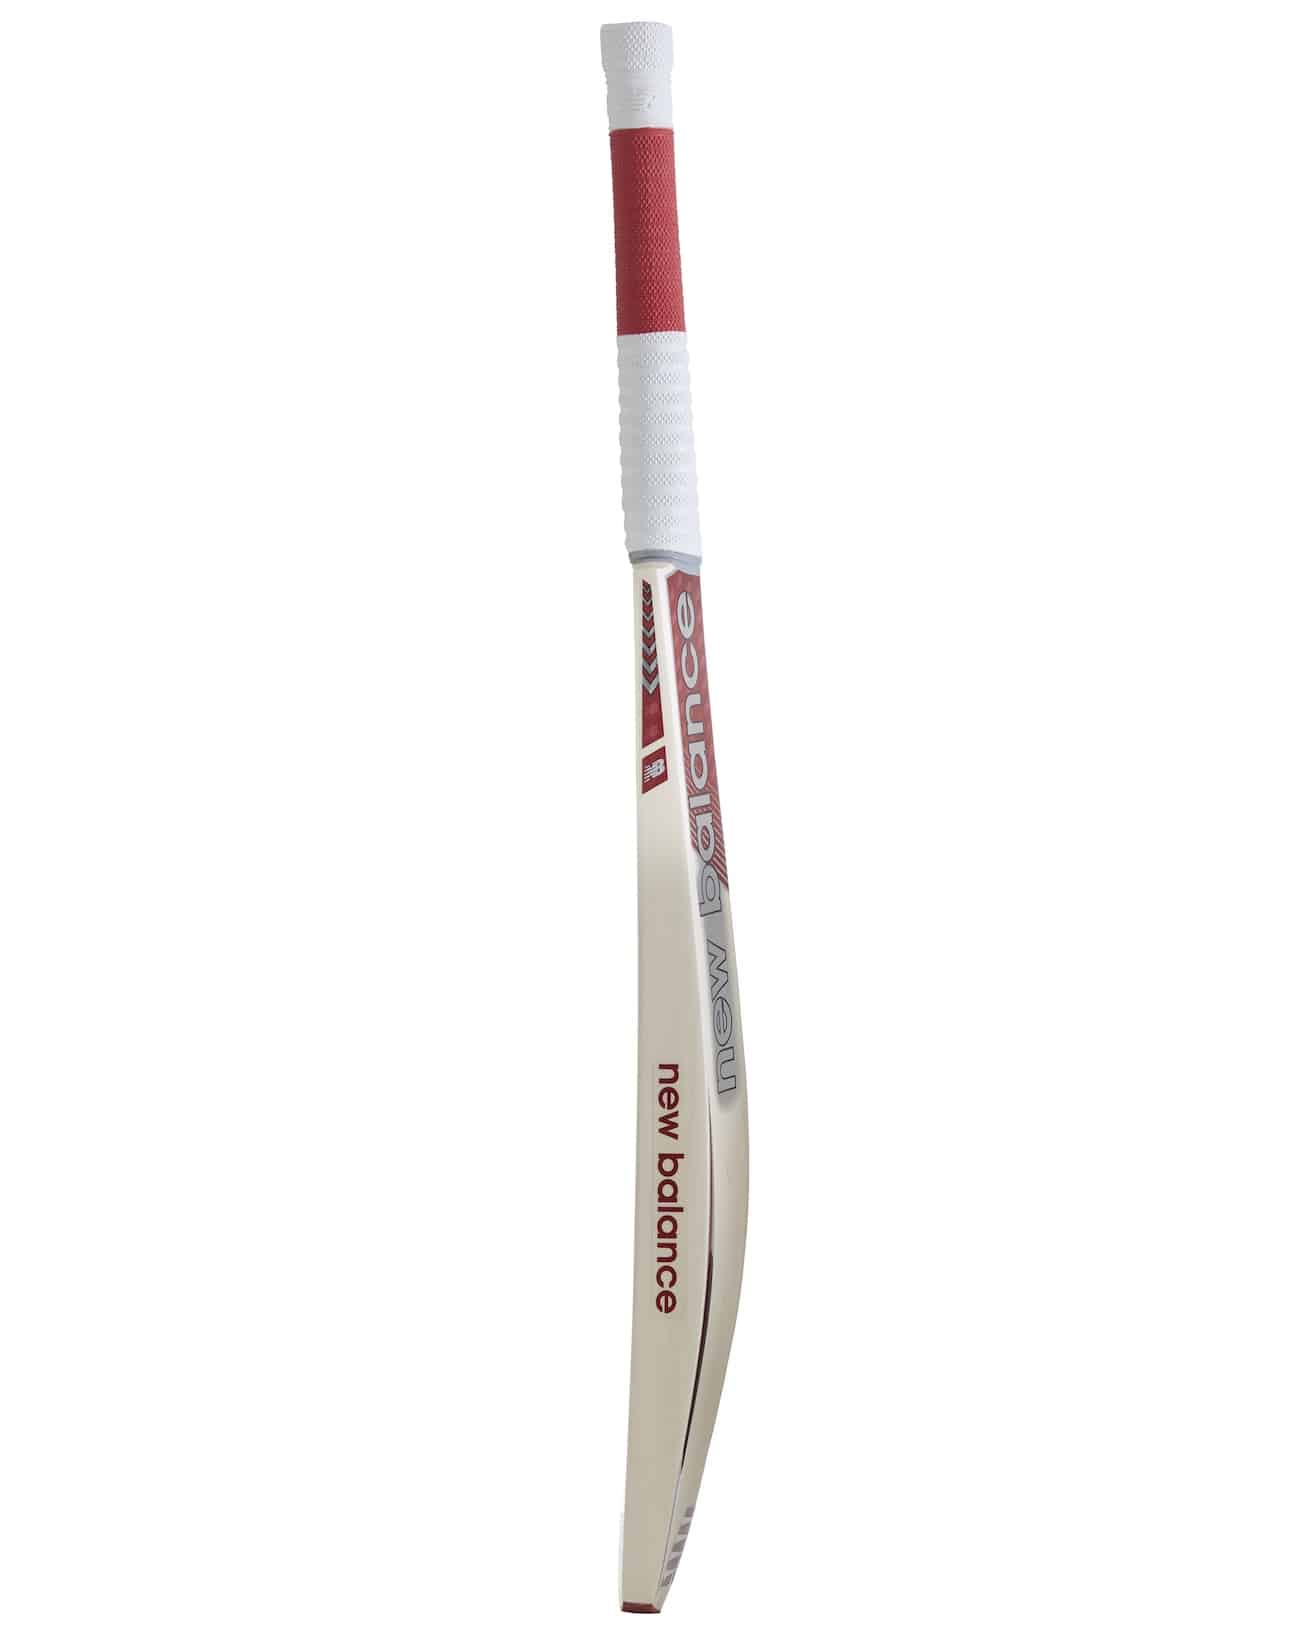 NB TC860 Cricket bat